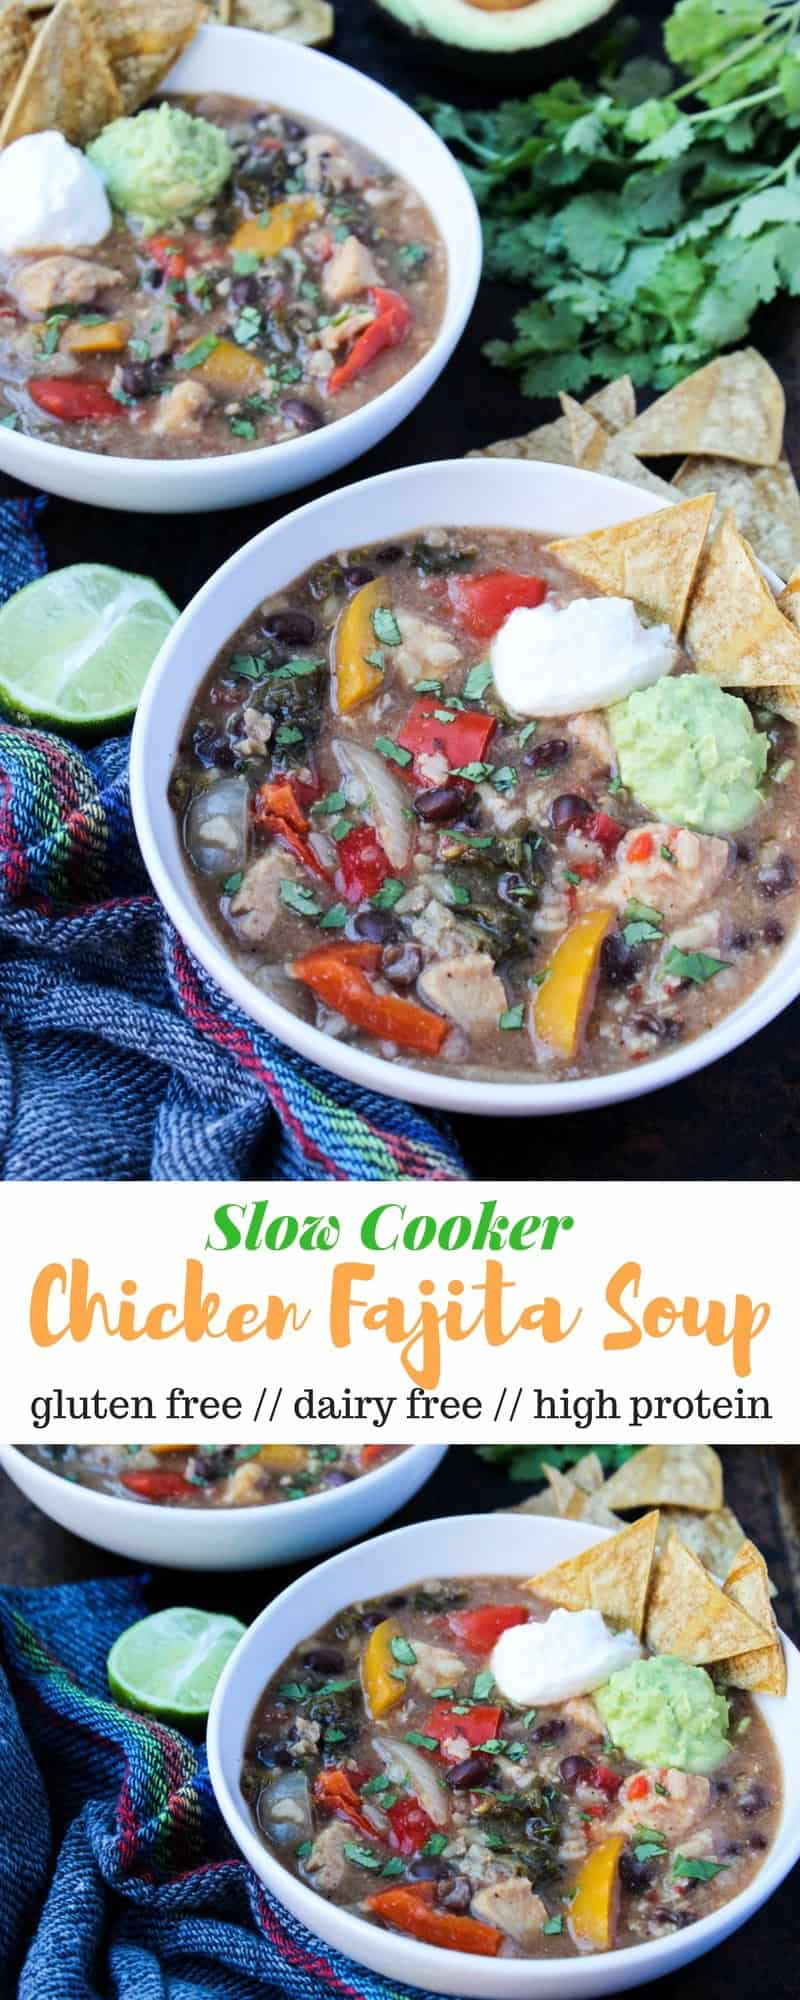 An easy dump and set meal, thisSlow Cooker Chicken Fajita Soup has all the main ingredients for chicken fajitas in a delicious, comforting, and healthy soup - Eat the Gains